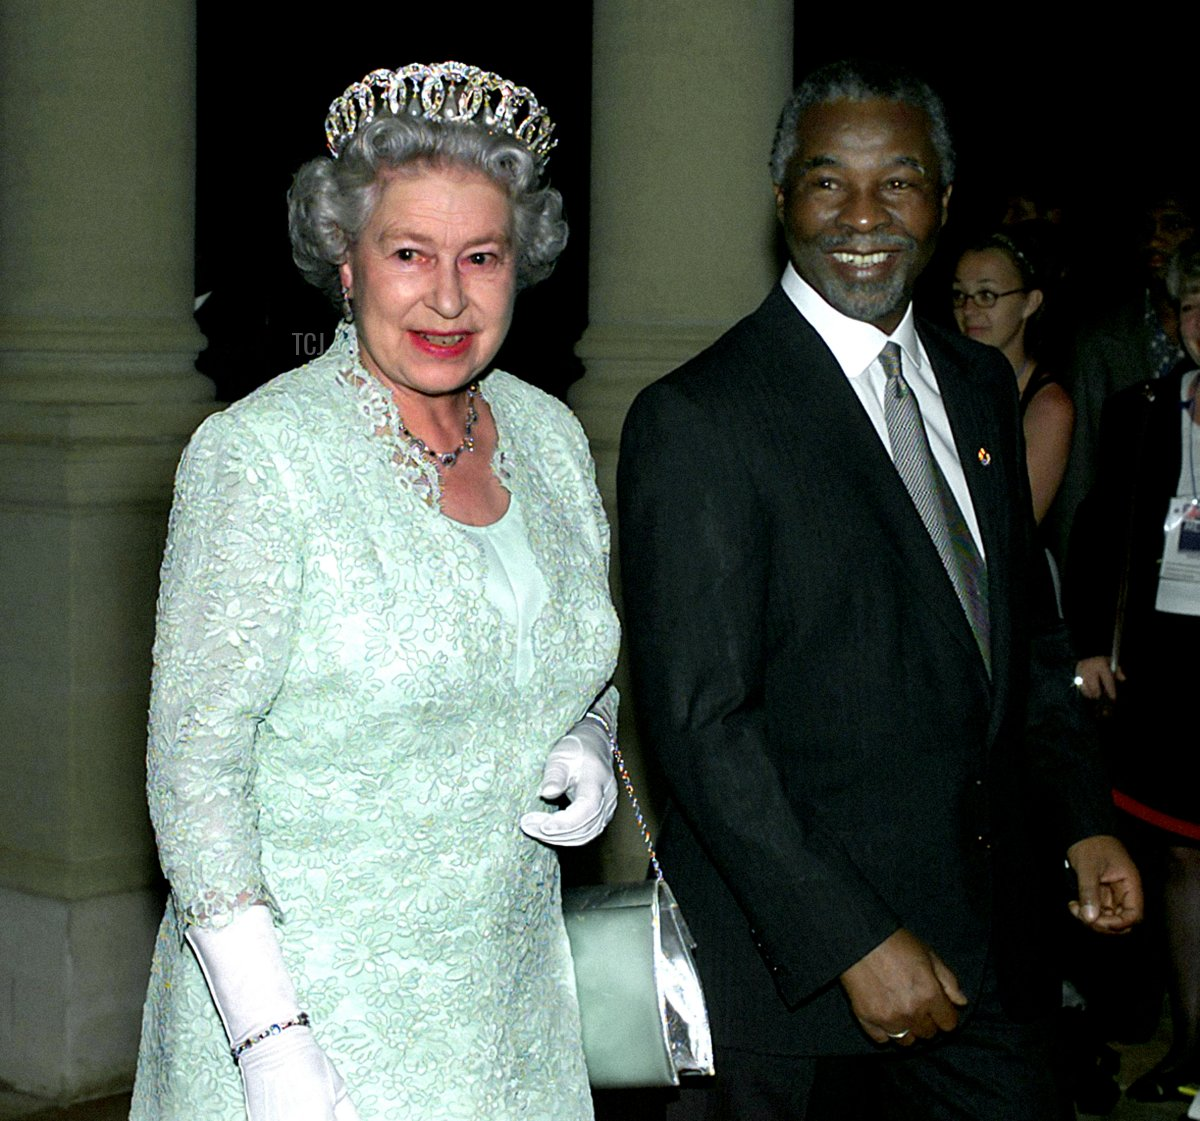 South African President Thabo Mbeki accompanies HM Queen Elizabeth II to a state banquet held in her honour at the Presidential Guest House, Pretoria, Nov 1999